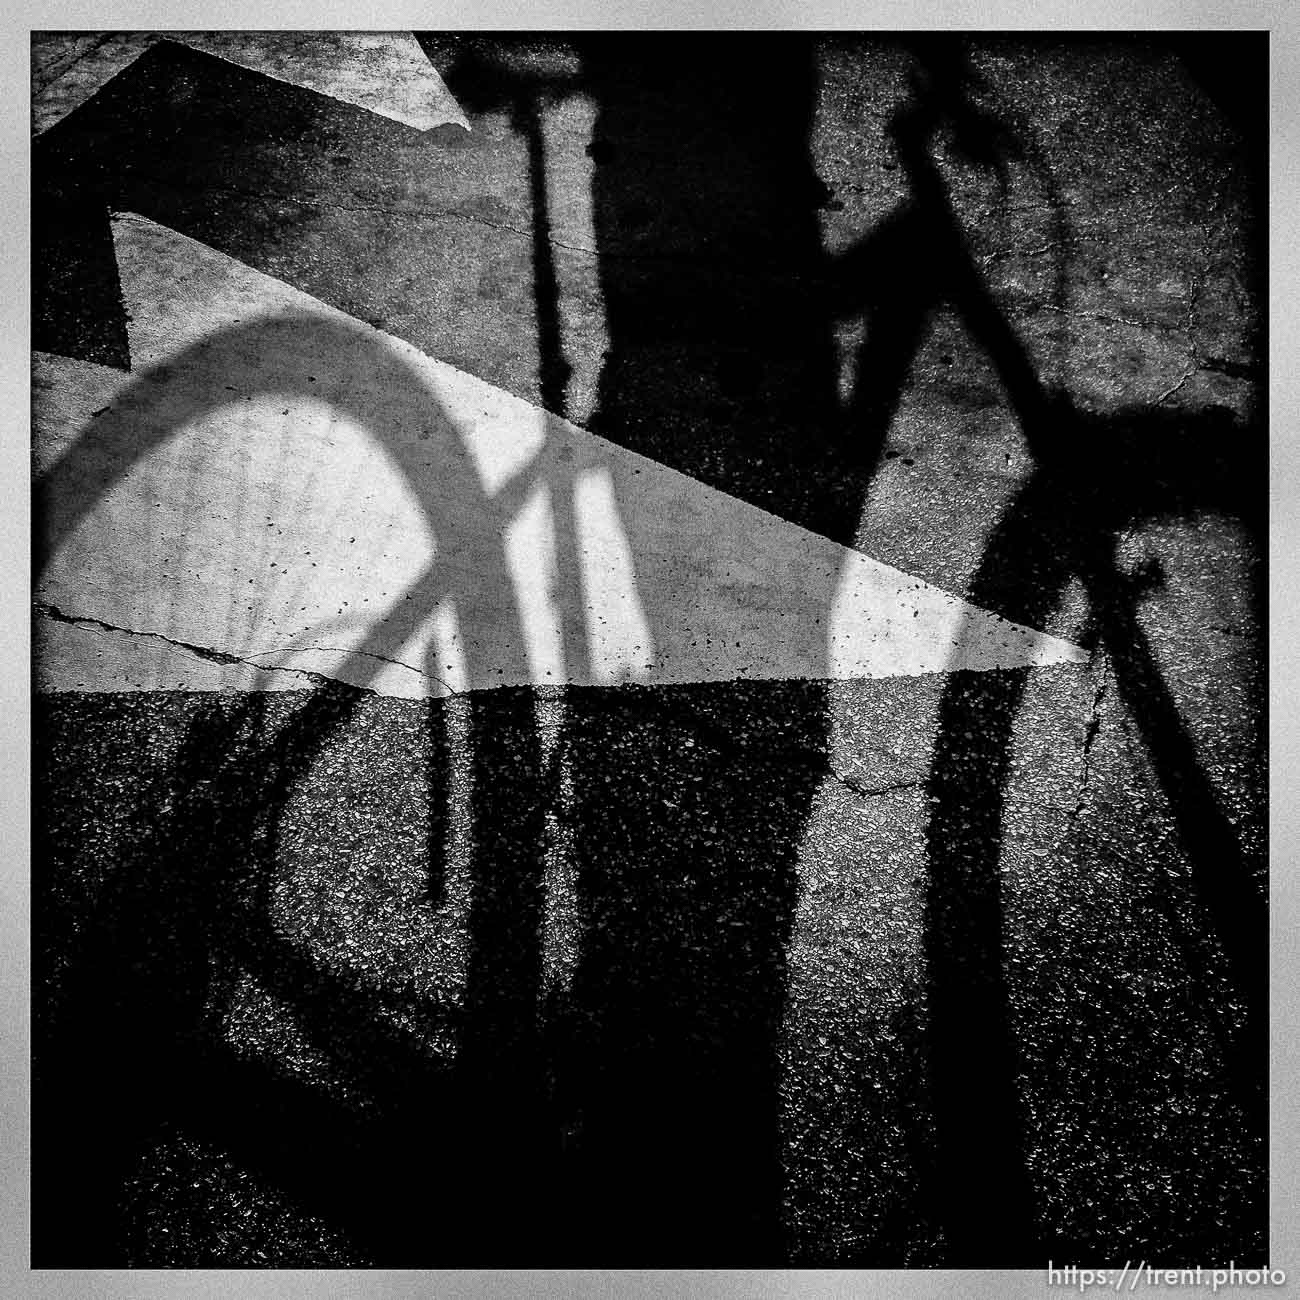 shadow with mountain bike and street